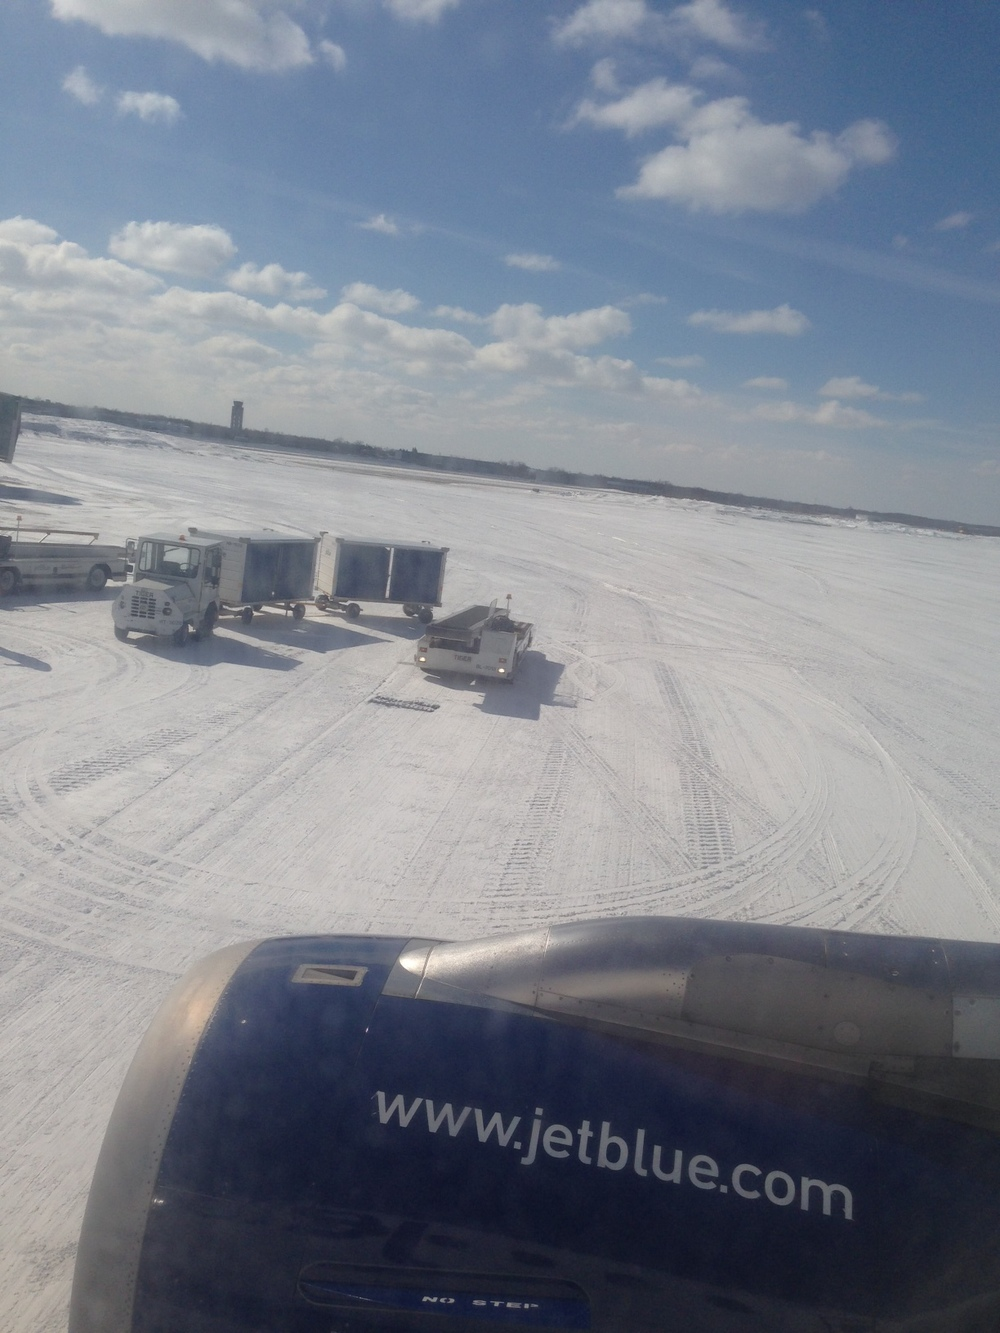 Greater Rochester International Airport on Feb 28th.